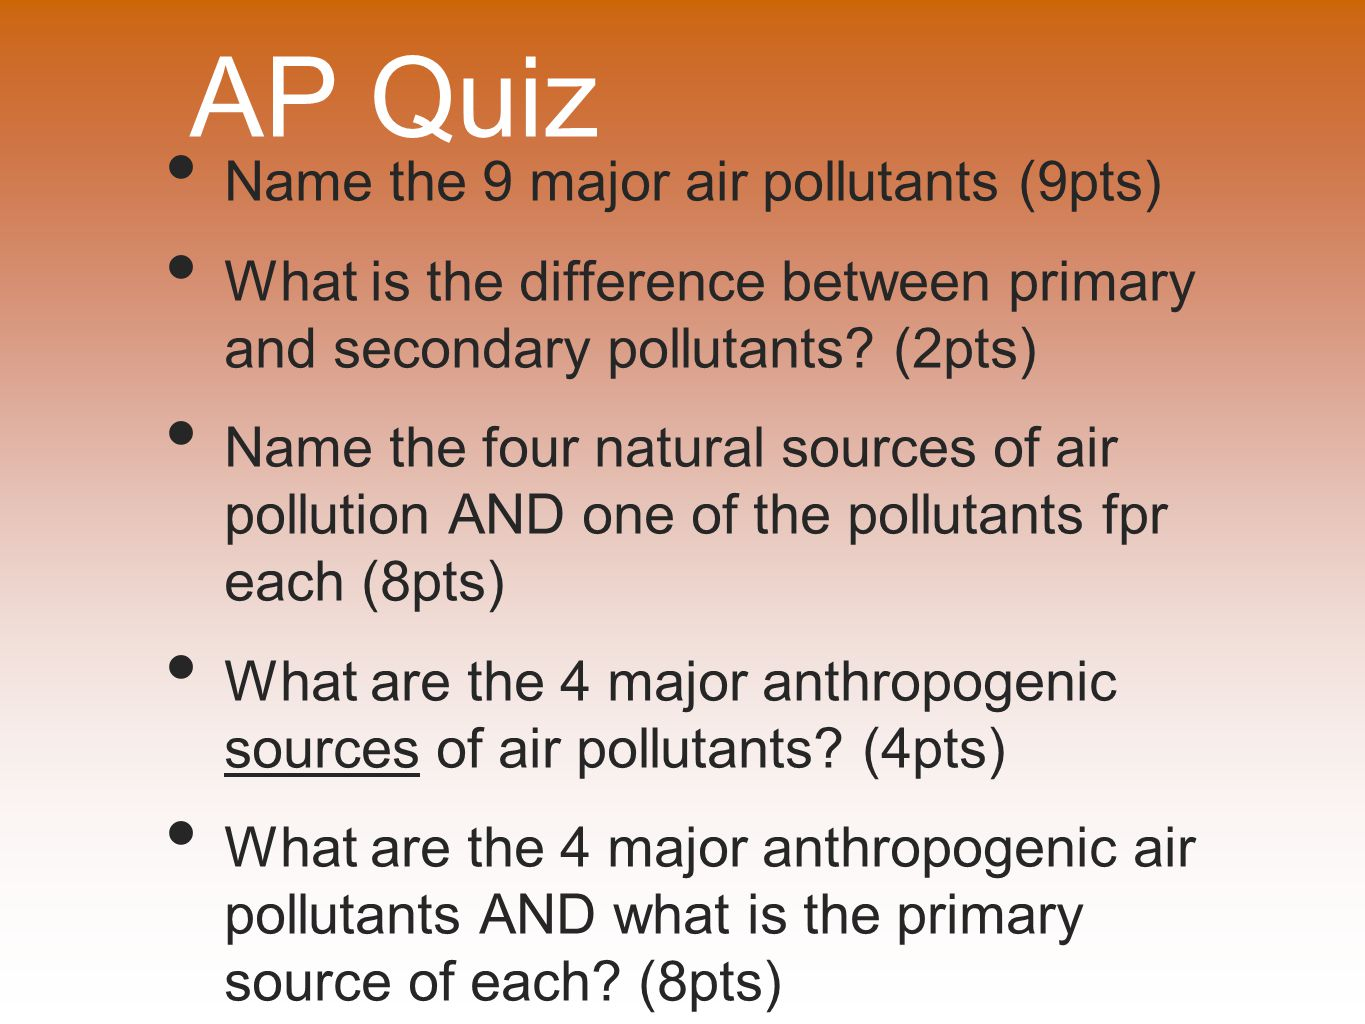 AP Quiz Name the 9 major air pollutants (9pts)